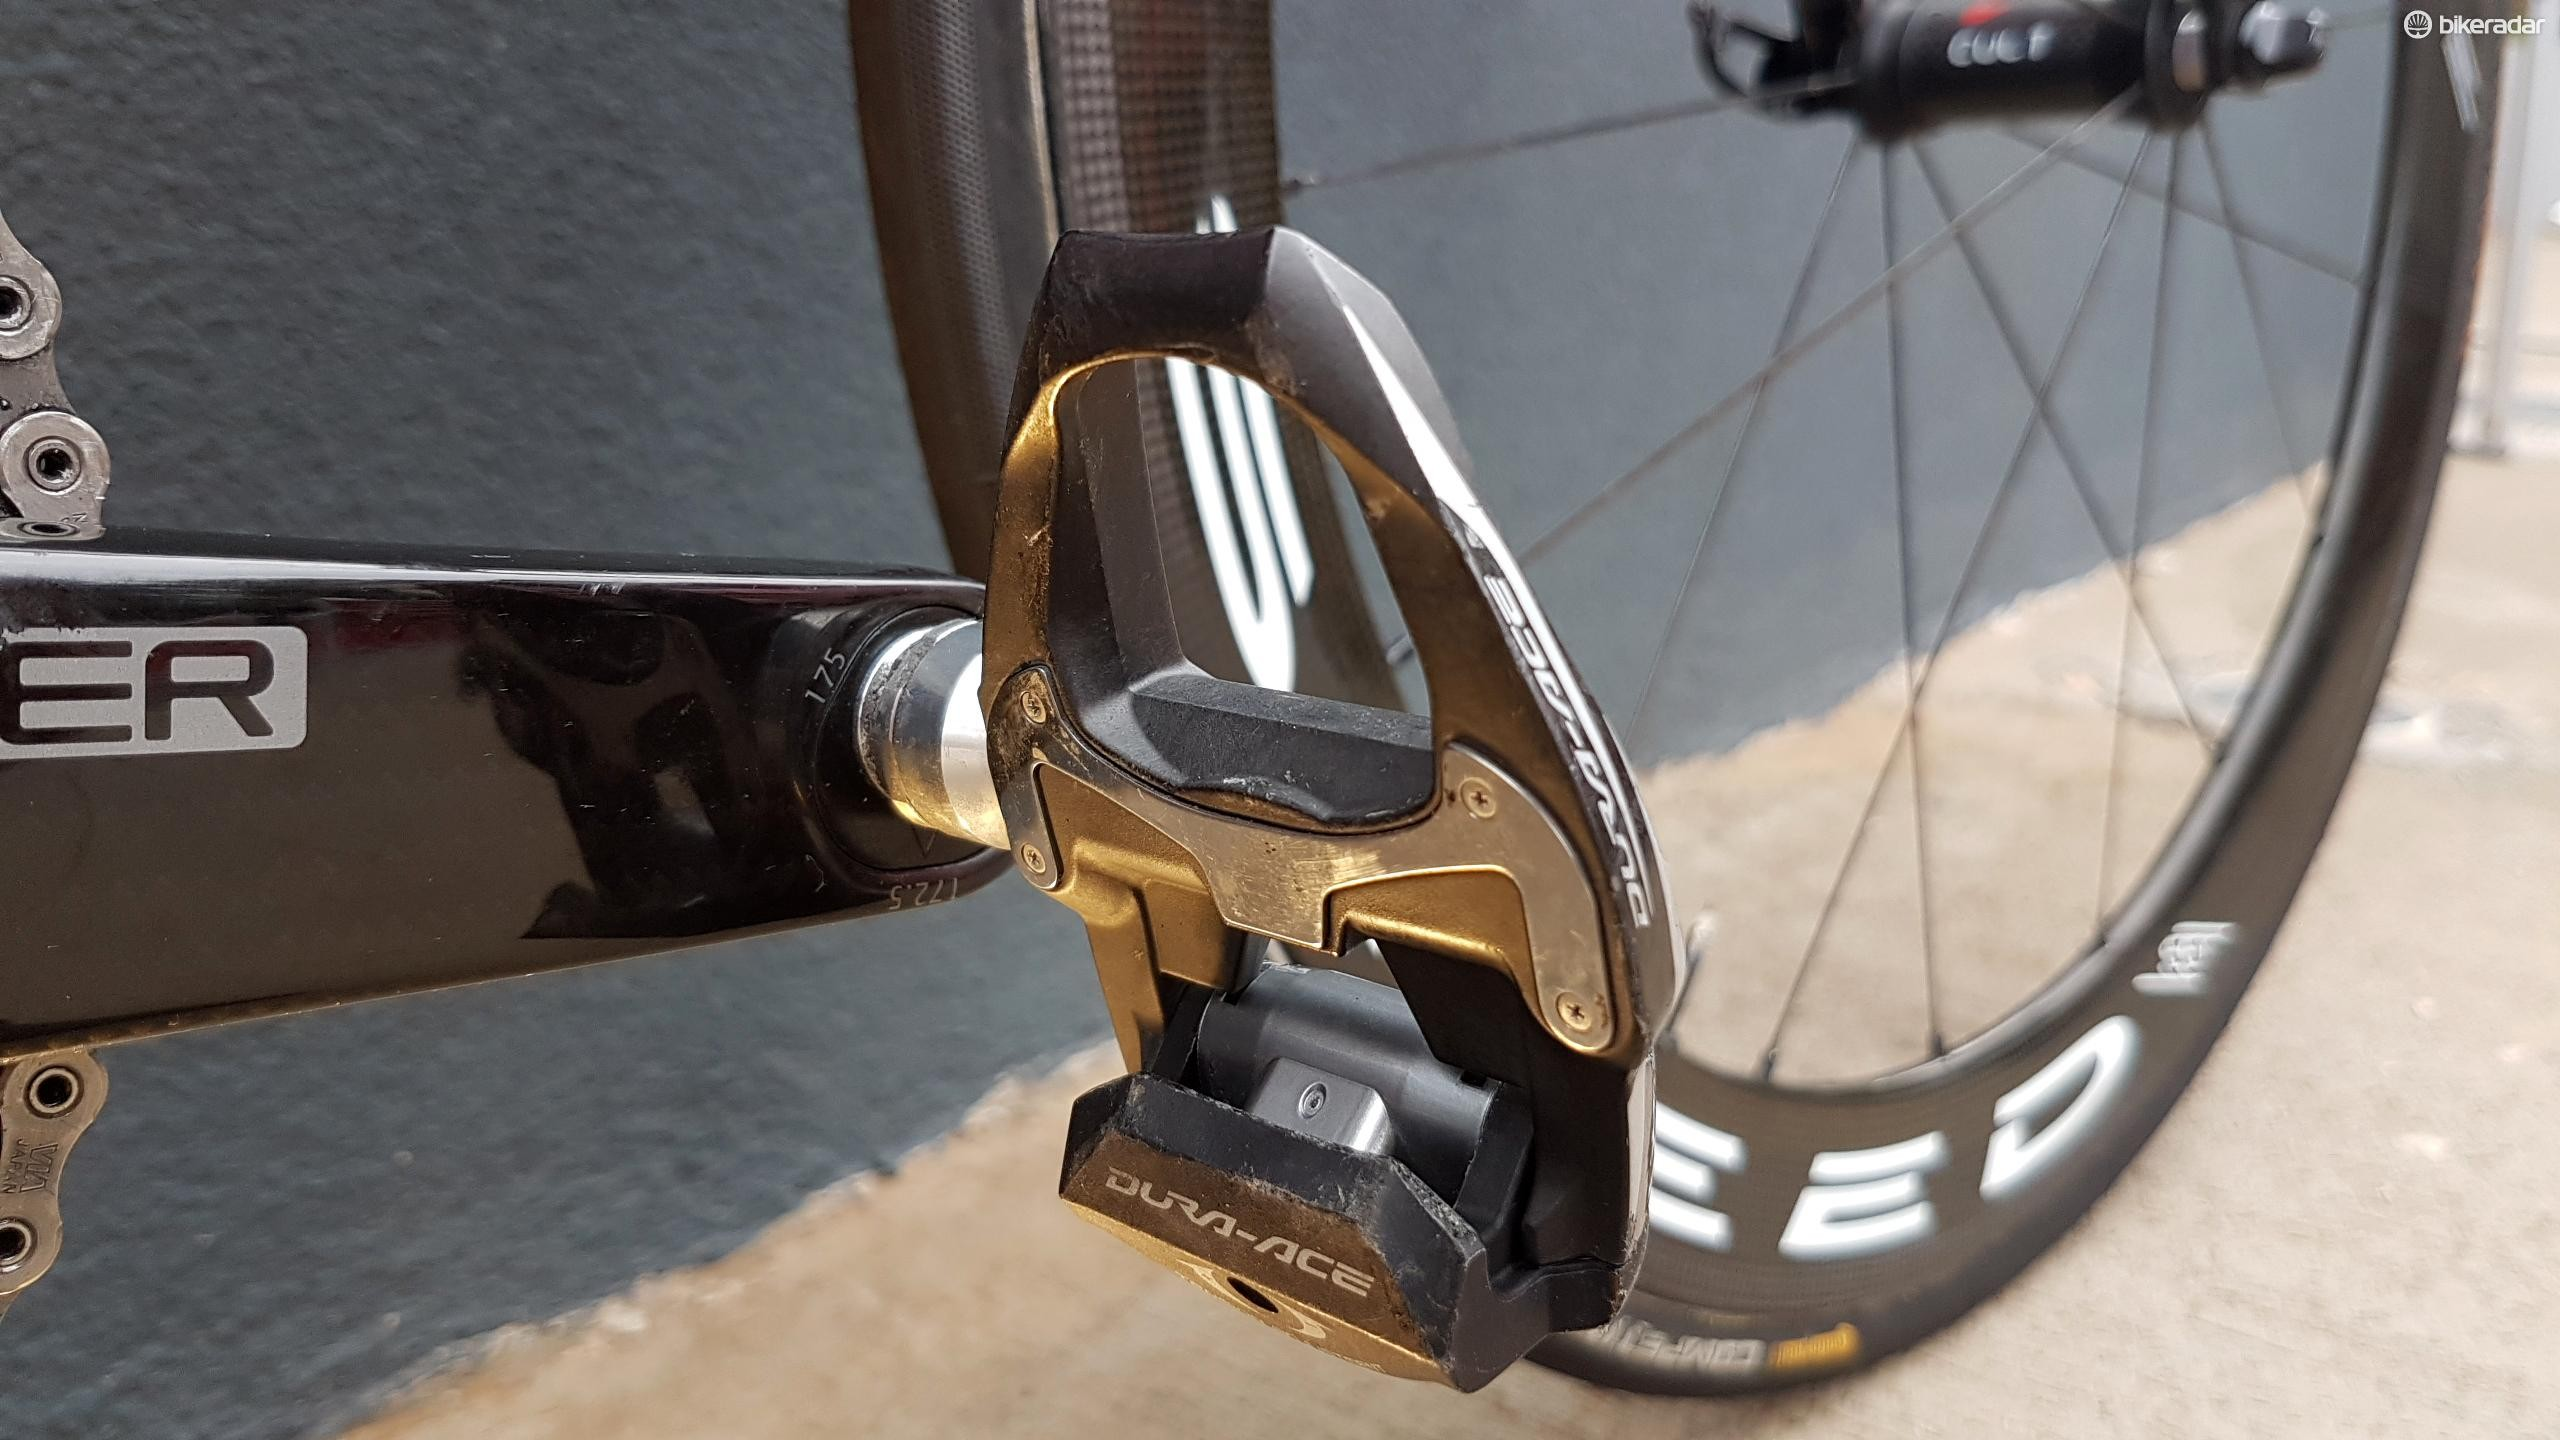 The team is using older Dura-Ace 9000 series pedals